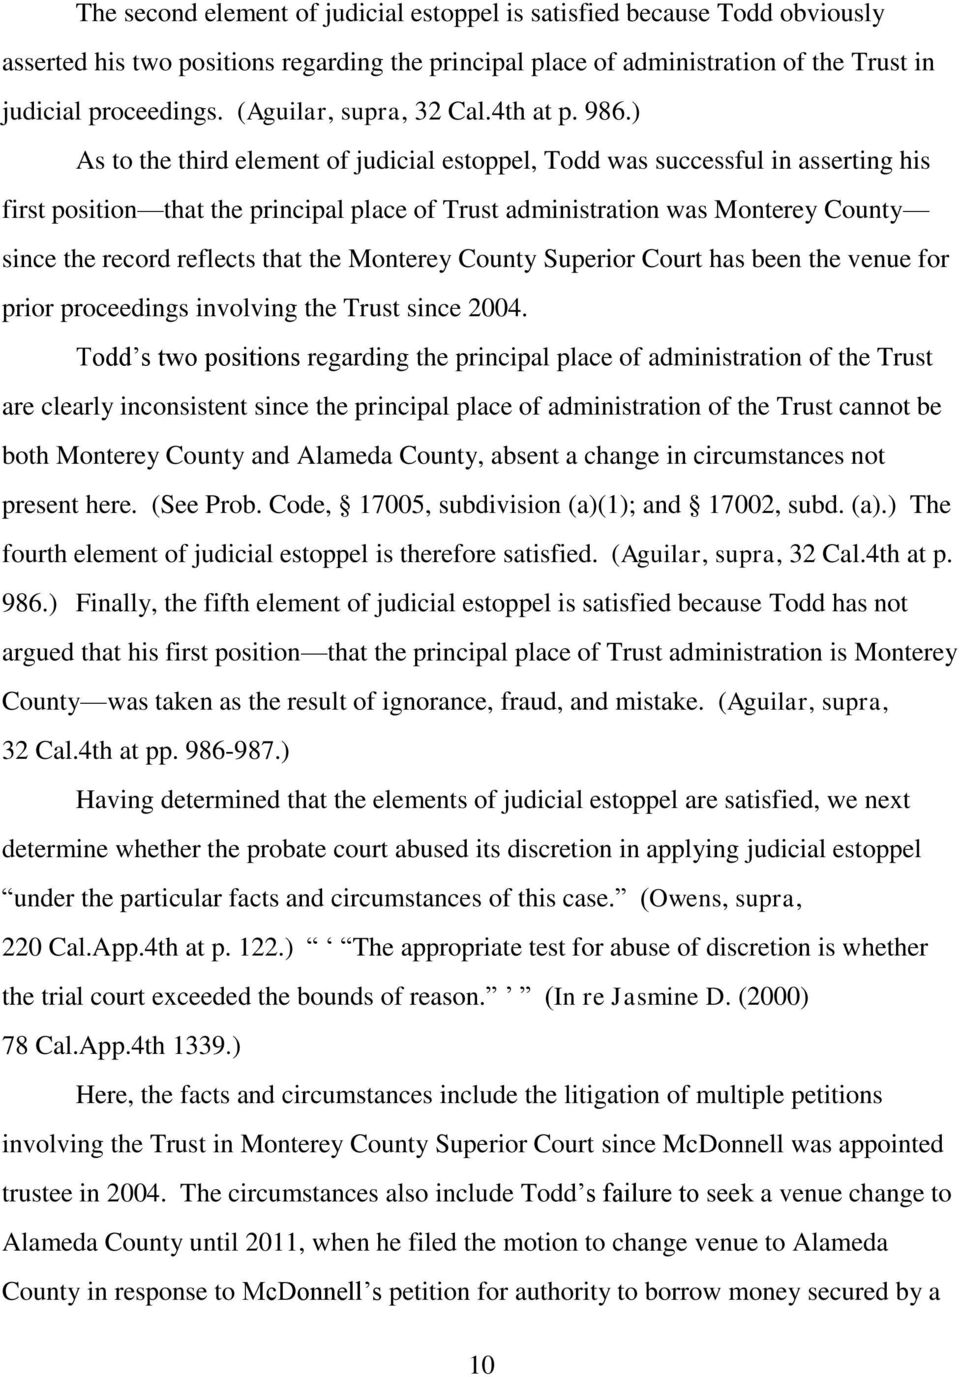 ) As to the third element of judicial estoppel, Todd was successful in asserting his first position that the principal place of Trust administration was Monterey County since the record reflects that